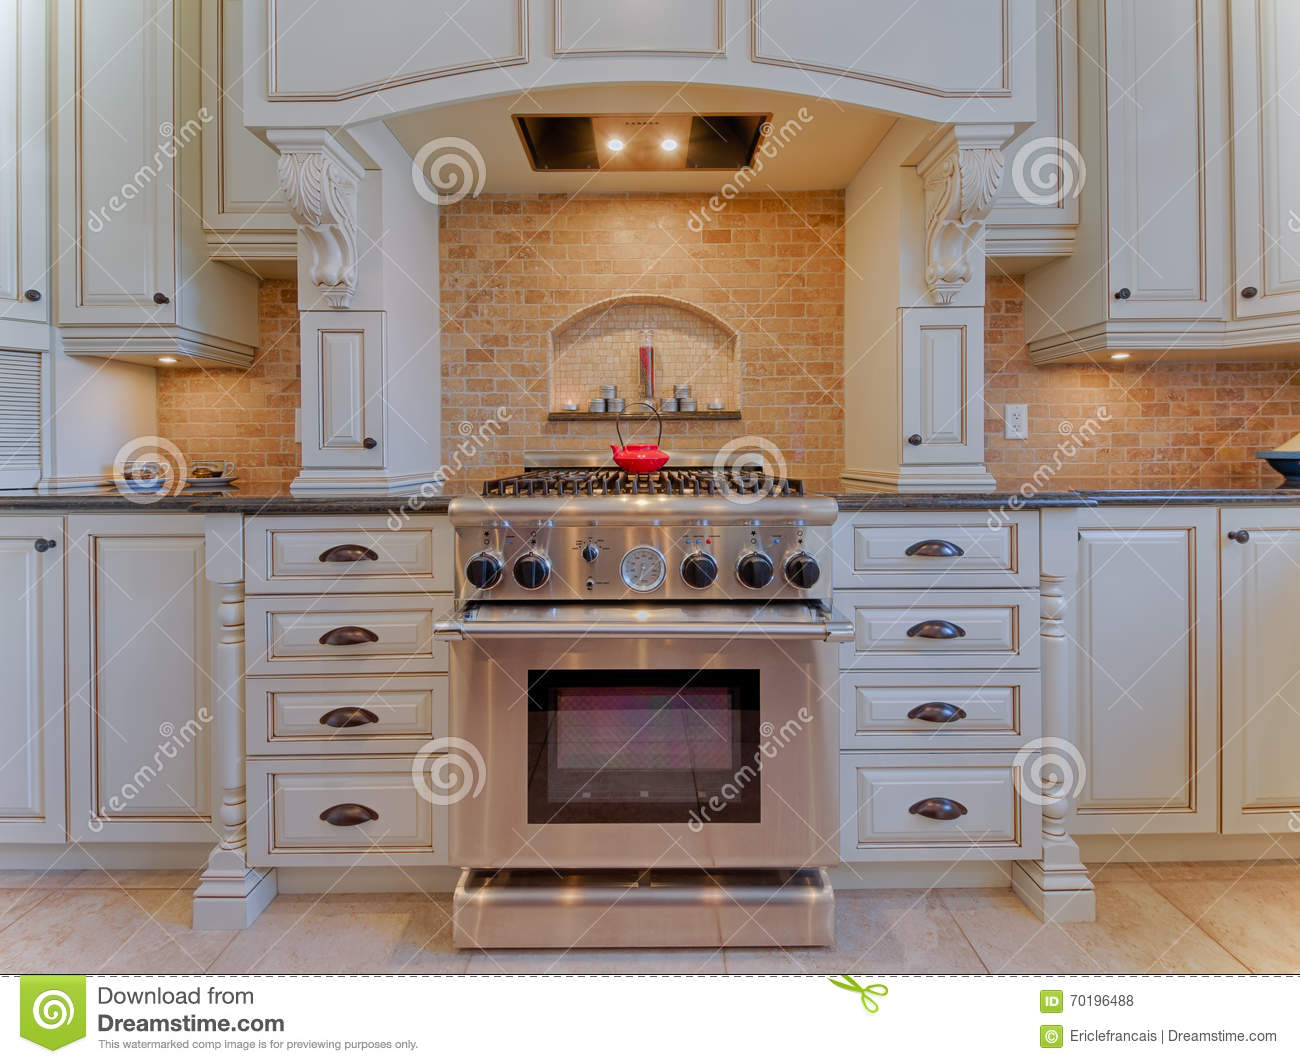 Building A Kitchen Island With Flat Top Stove